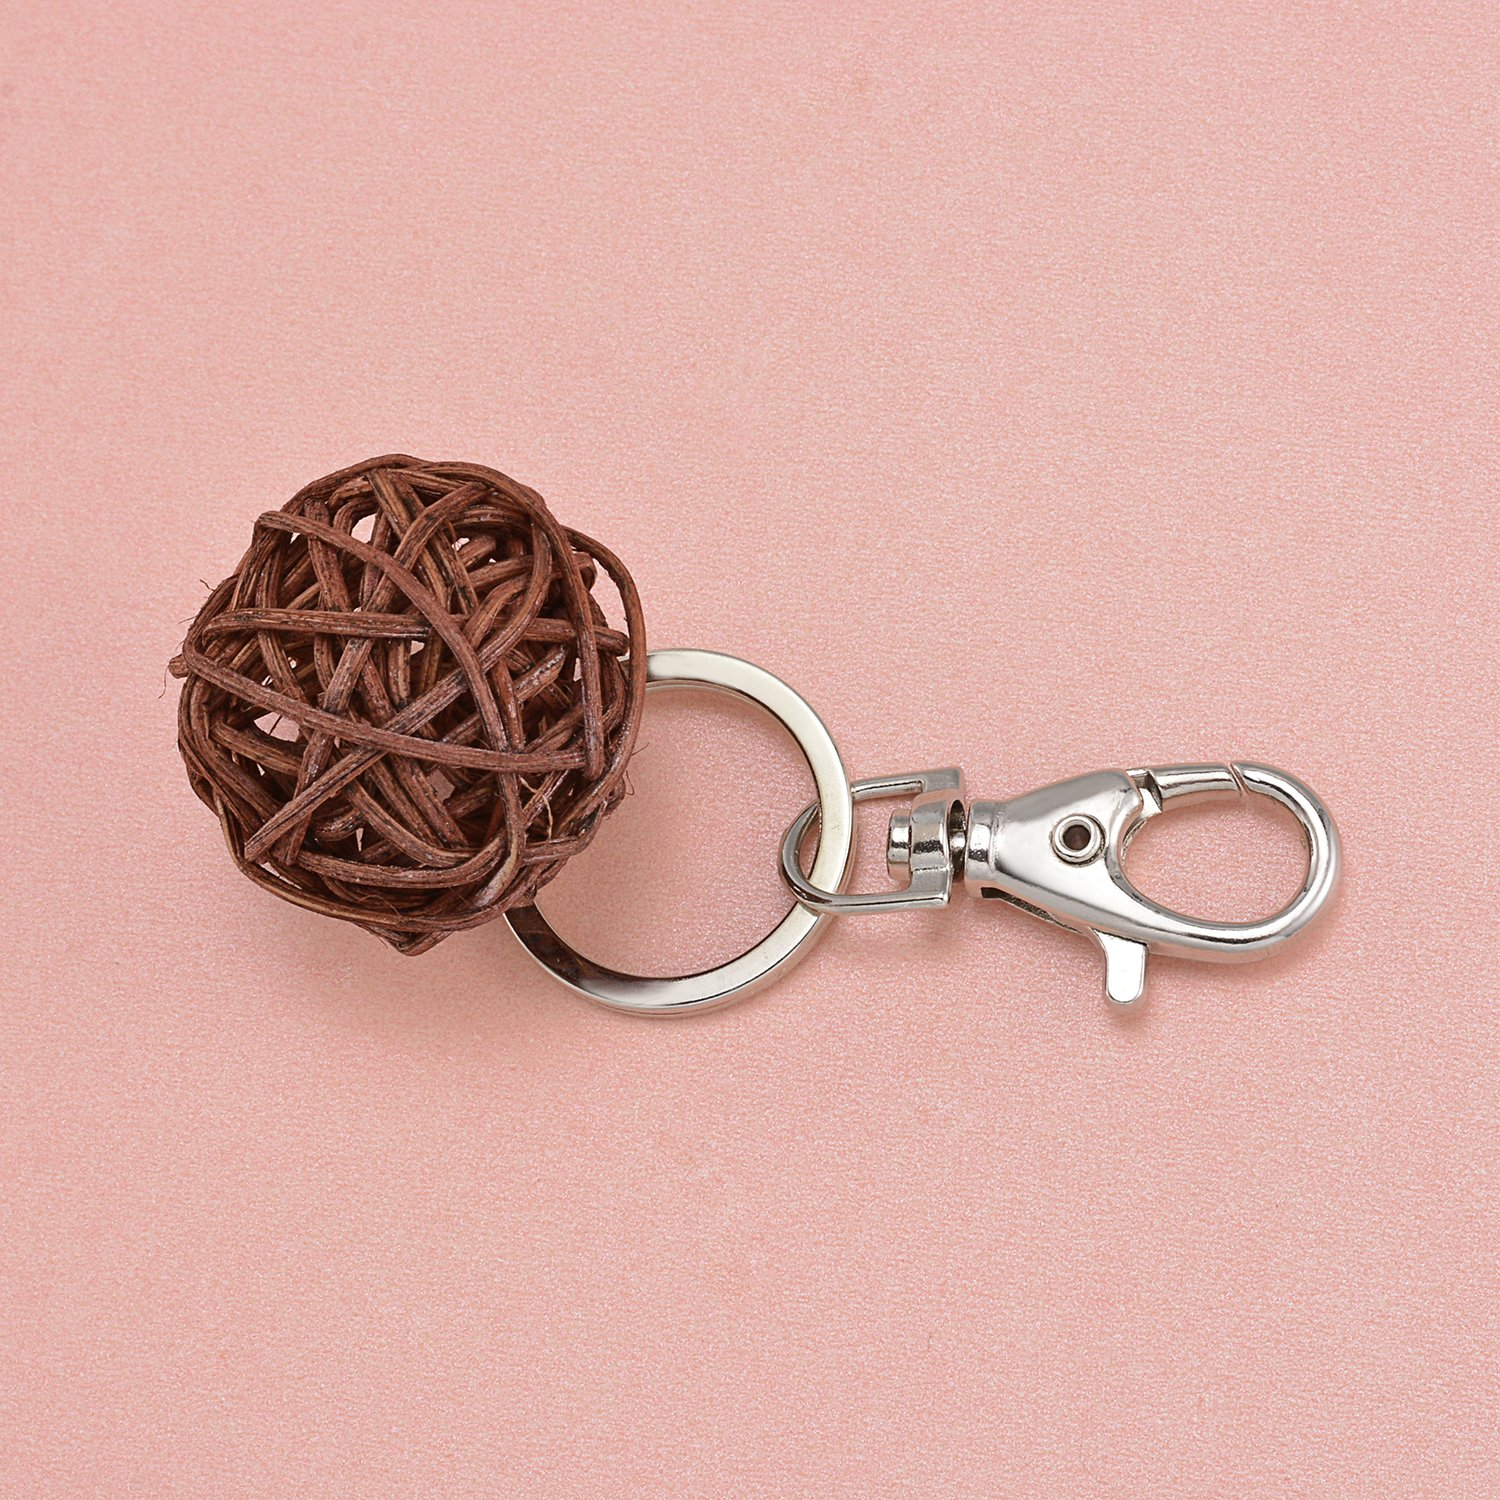 100 Pcs Metal Swivel Clasps Lanyard Snap Hook Lobster Claw Clasp Jewelry Findings with Key Chain Rings